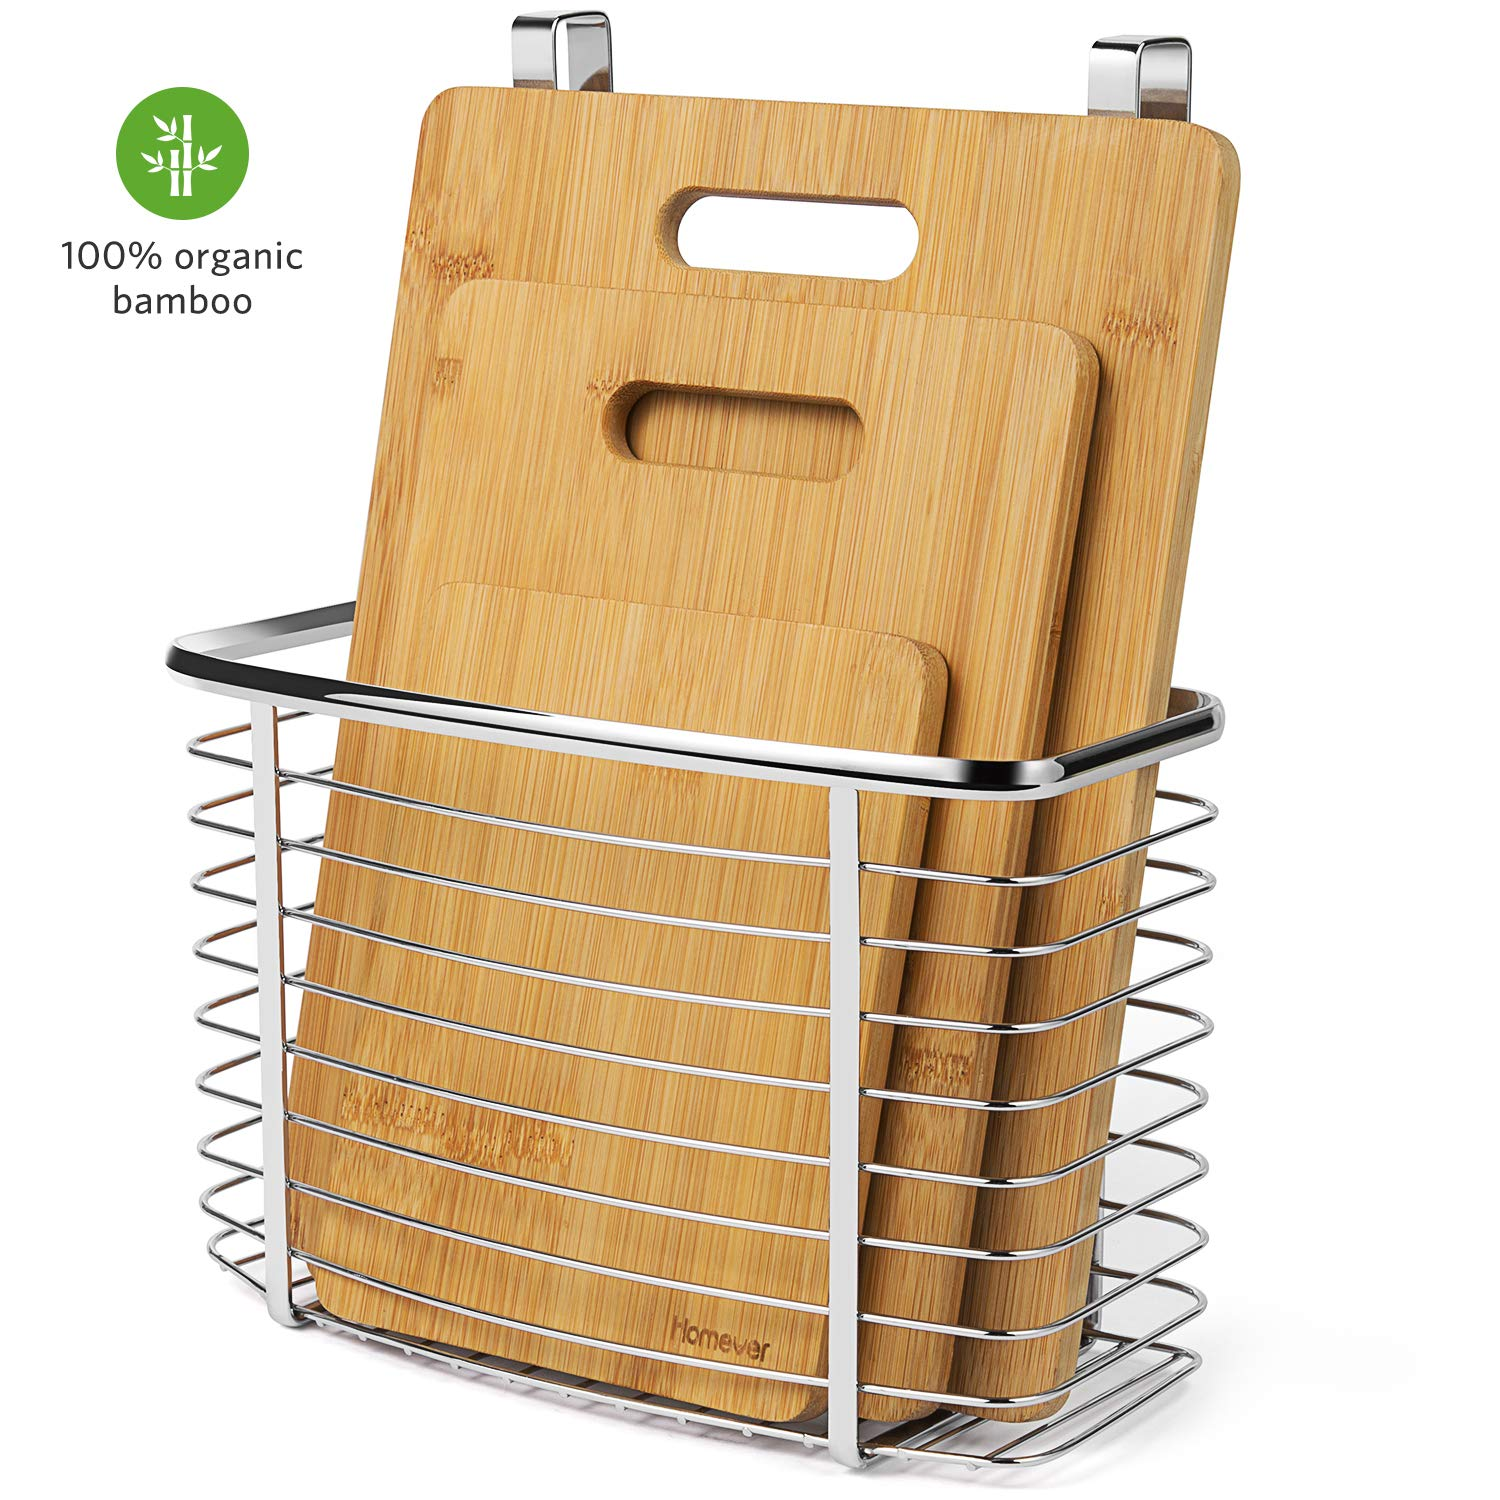 Deals on Homever 3-Pc Bamboo Cutting Board Set PLUS Hanging Basket